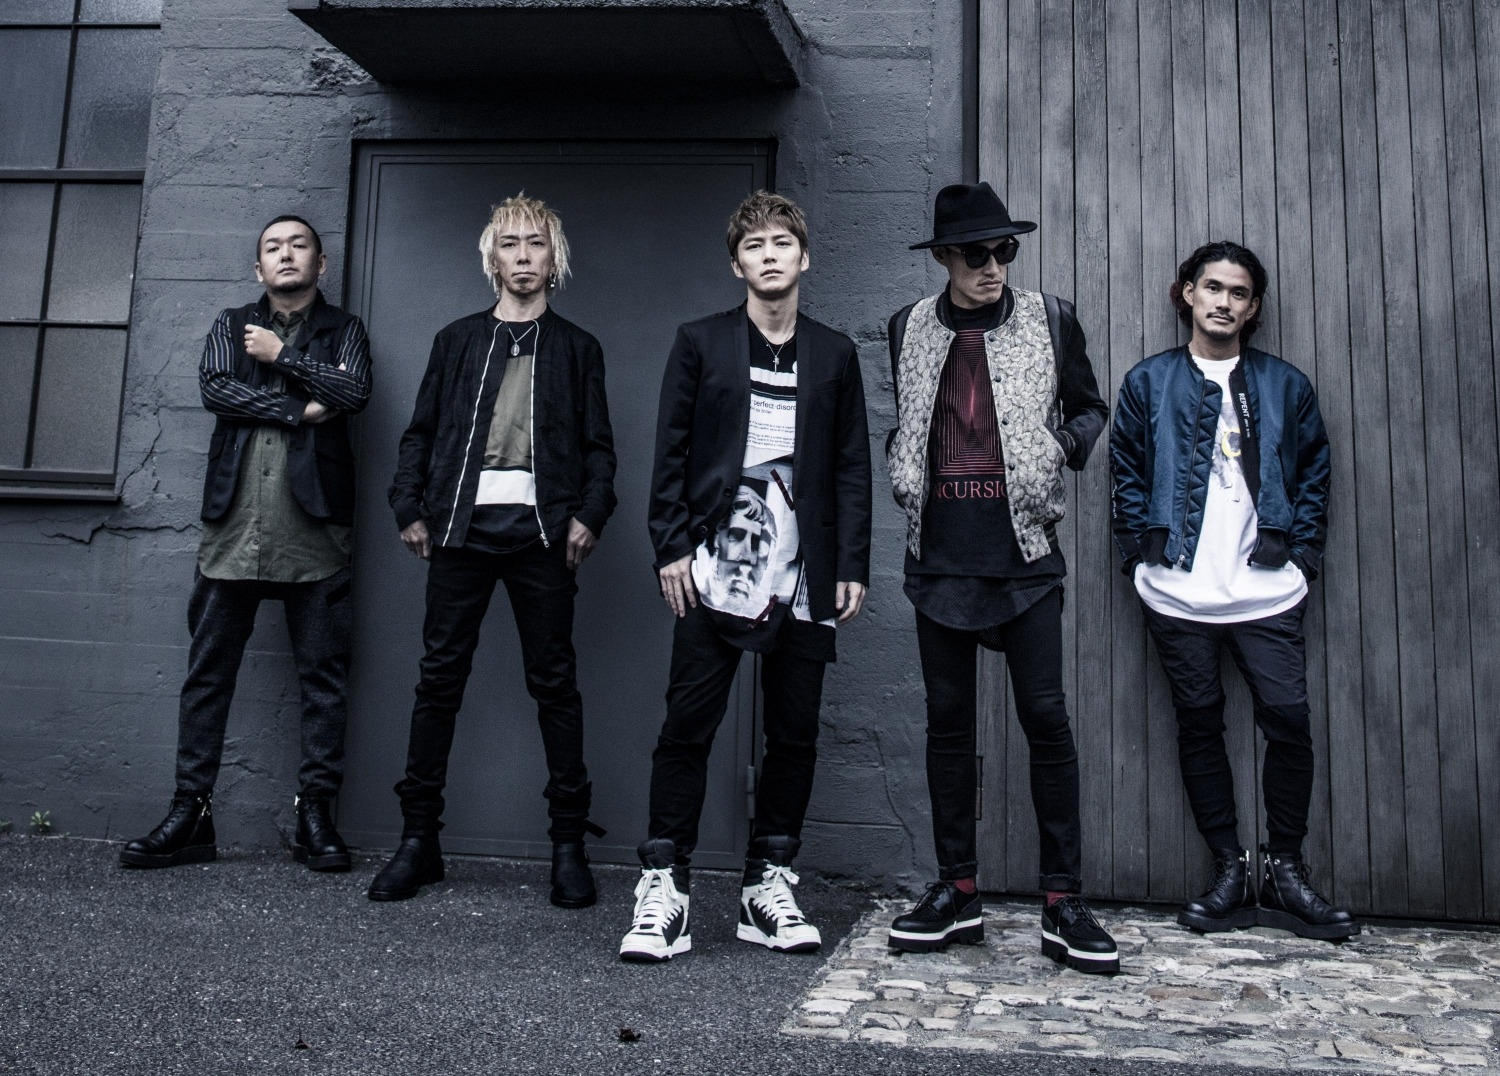 FLOW to Appear at ANISONG WORLD MATSURI at Otakon